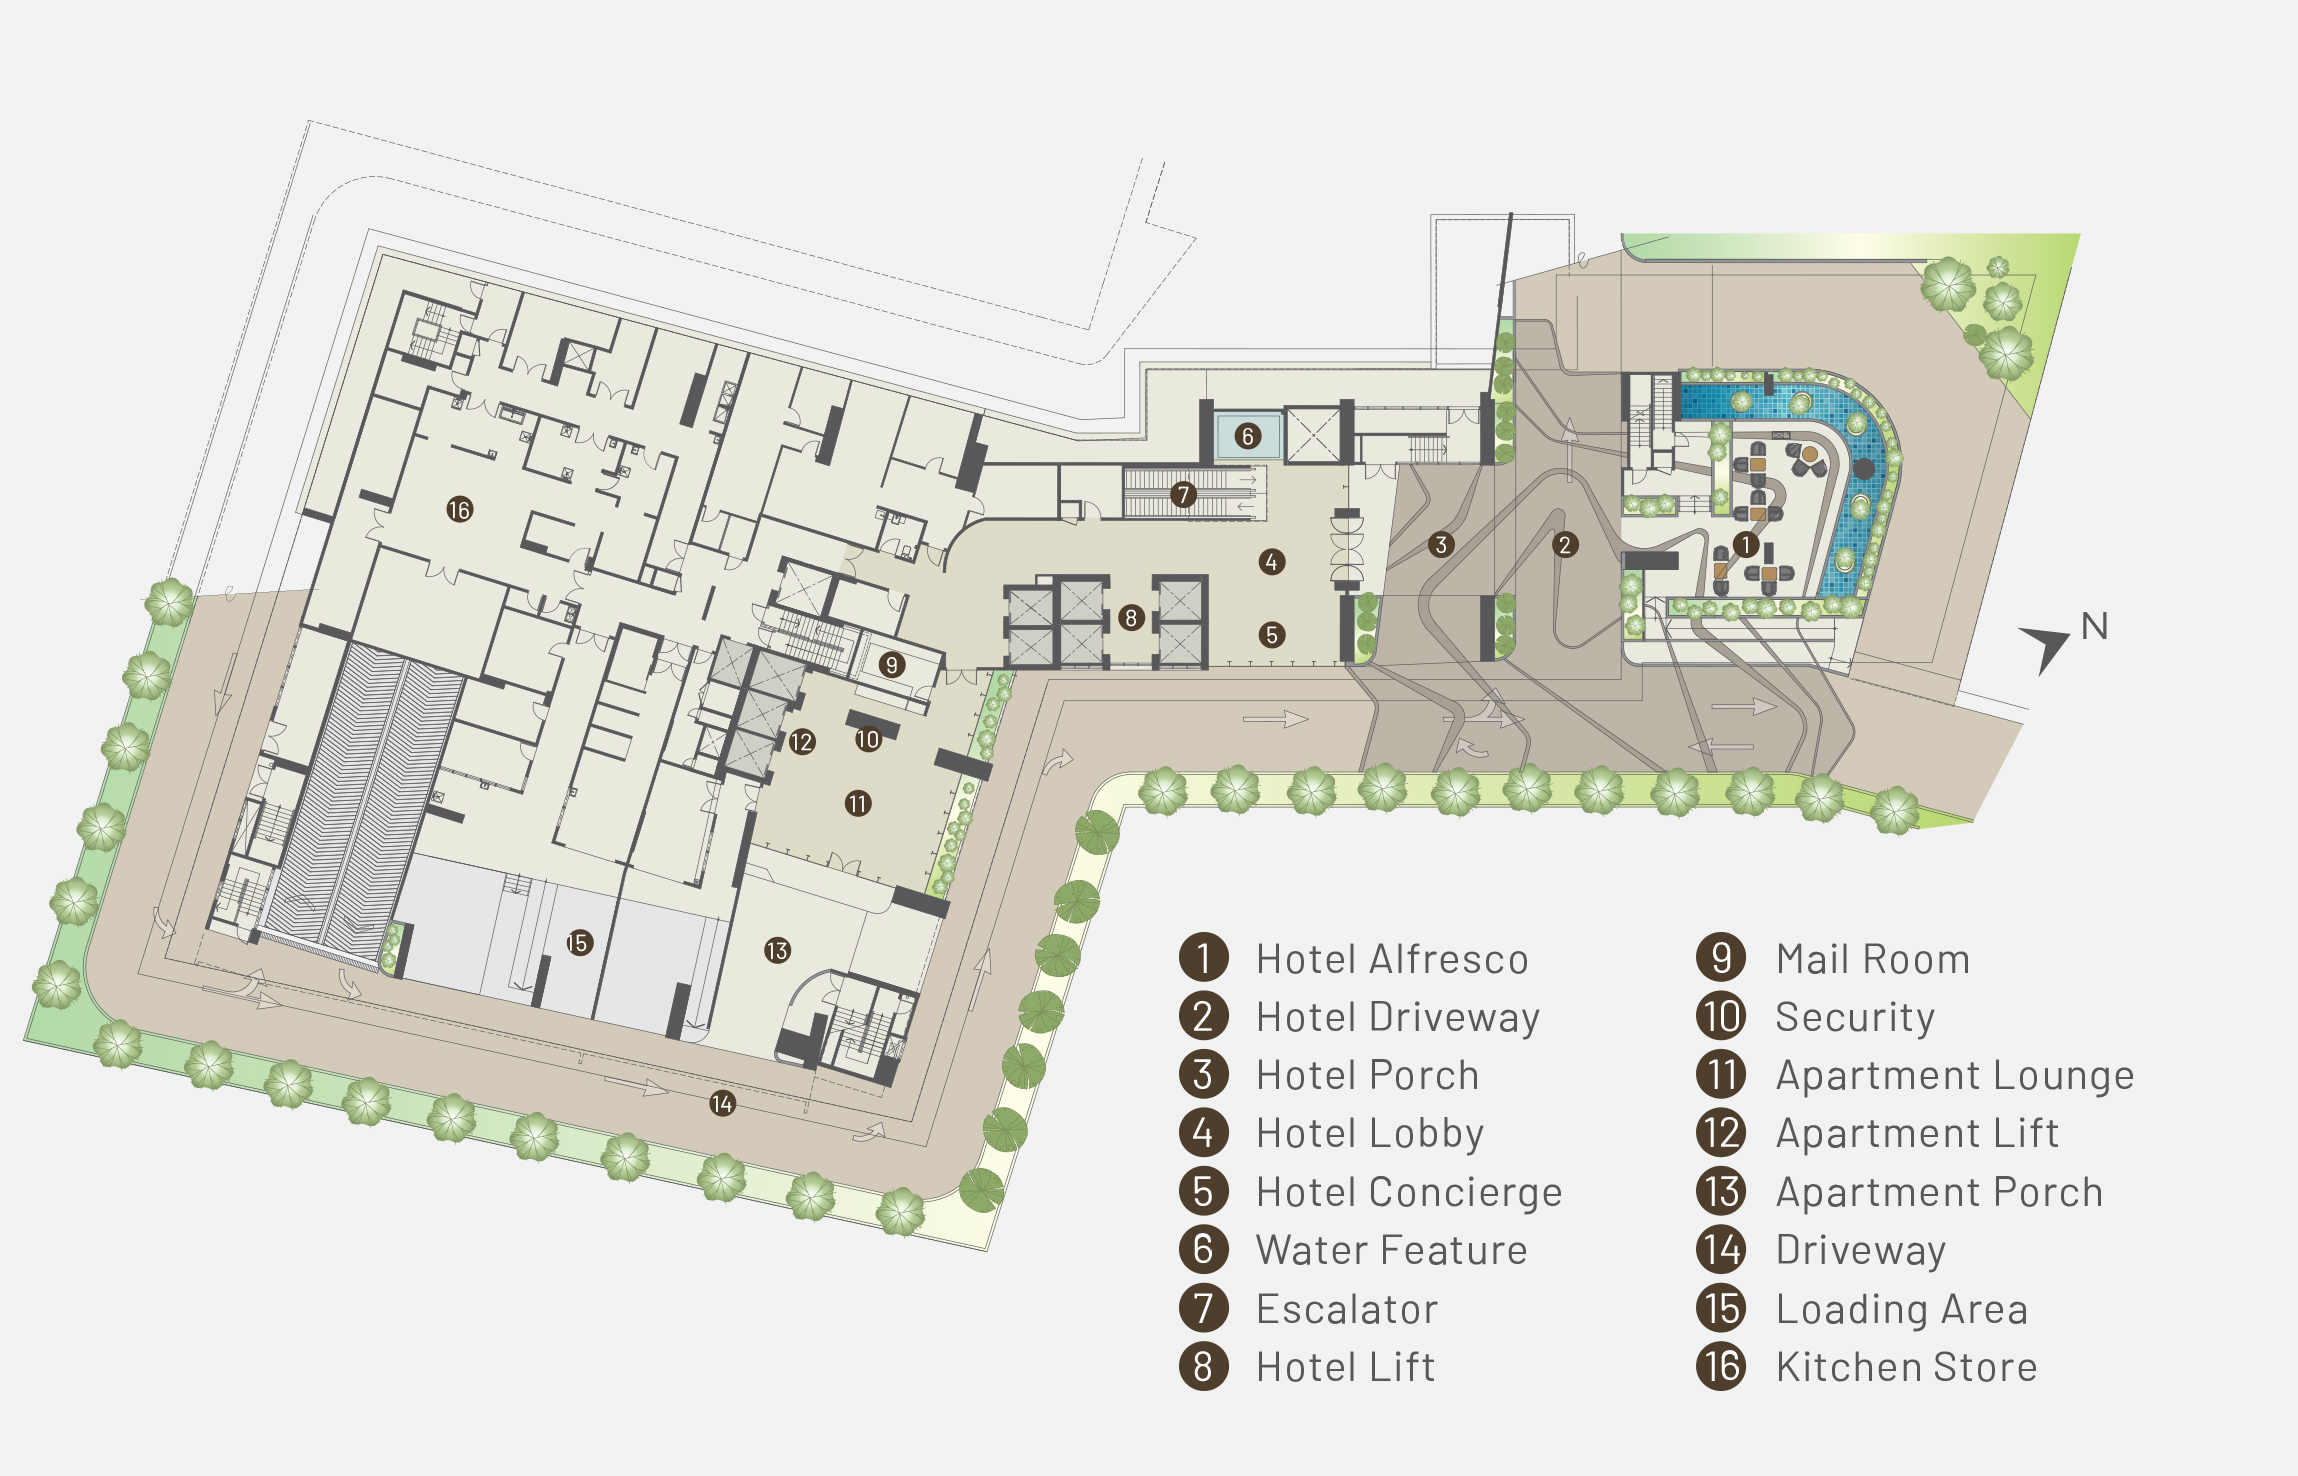 Ground floor plan of Alfa Bangsar showing facilities such as hotel afresco, hotel driveway, hotel porch, hotel lobby, hotel concierge, water feature, escalator, hotel lift, mail room, security, apartment lounge, apartment lift, apartment porch, driveway, loading area, and kitchen store.